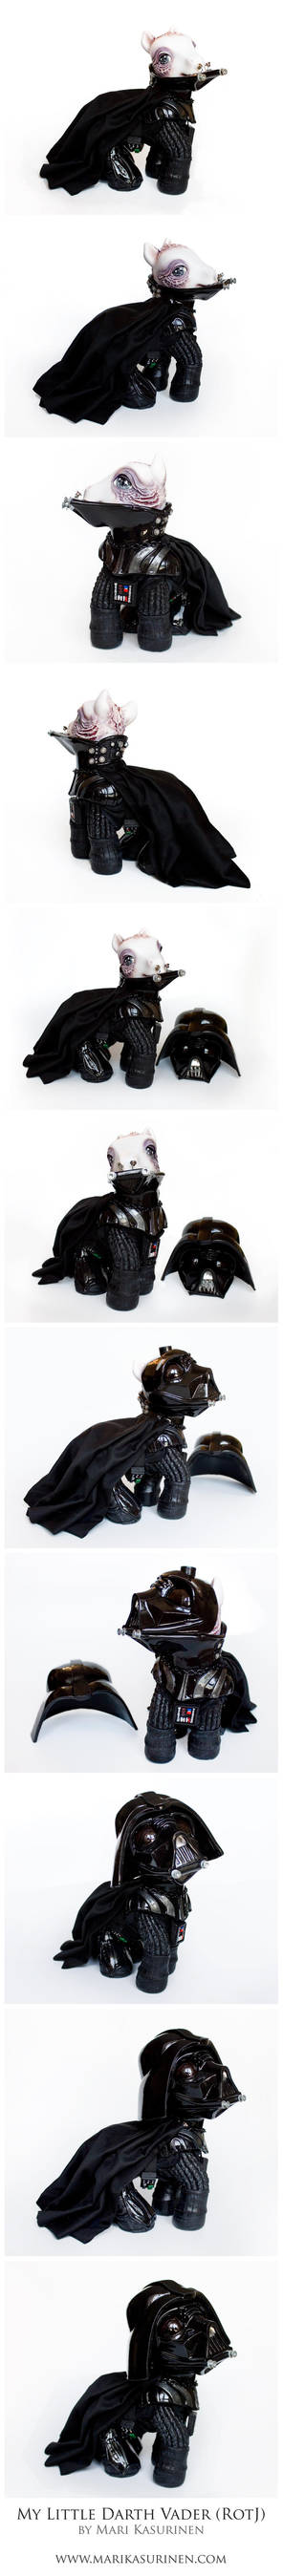 My Little Darth Vader (RotJ) by Spippo